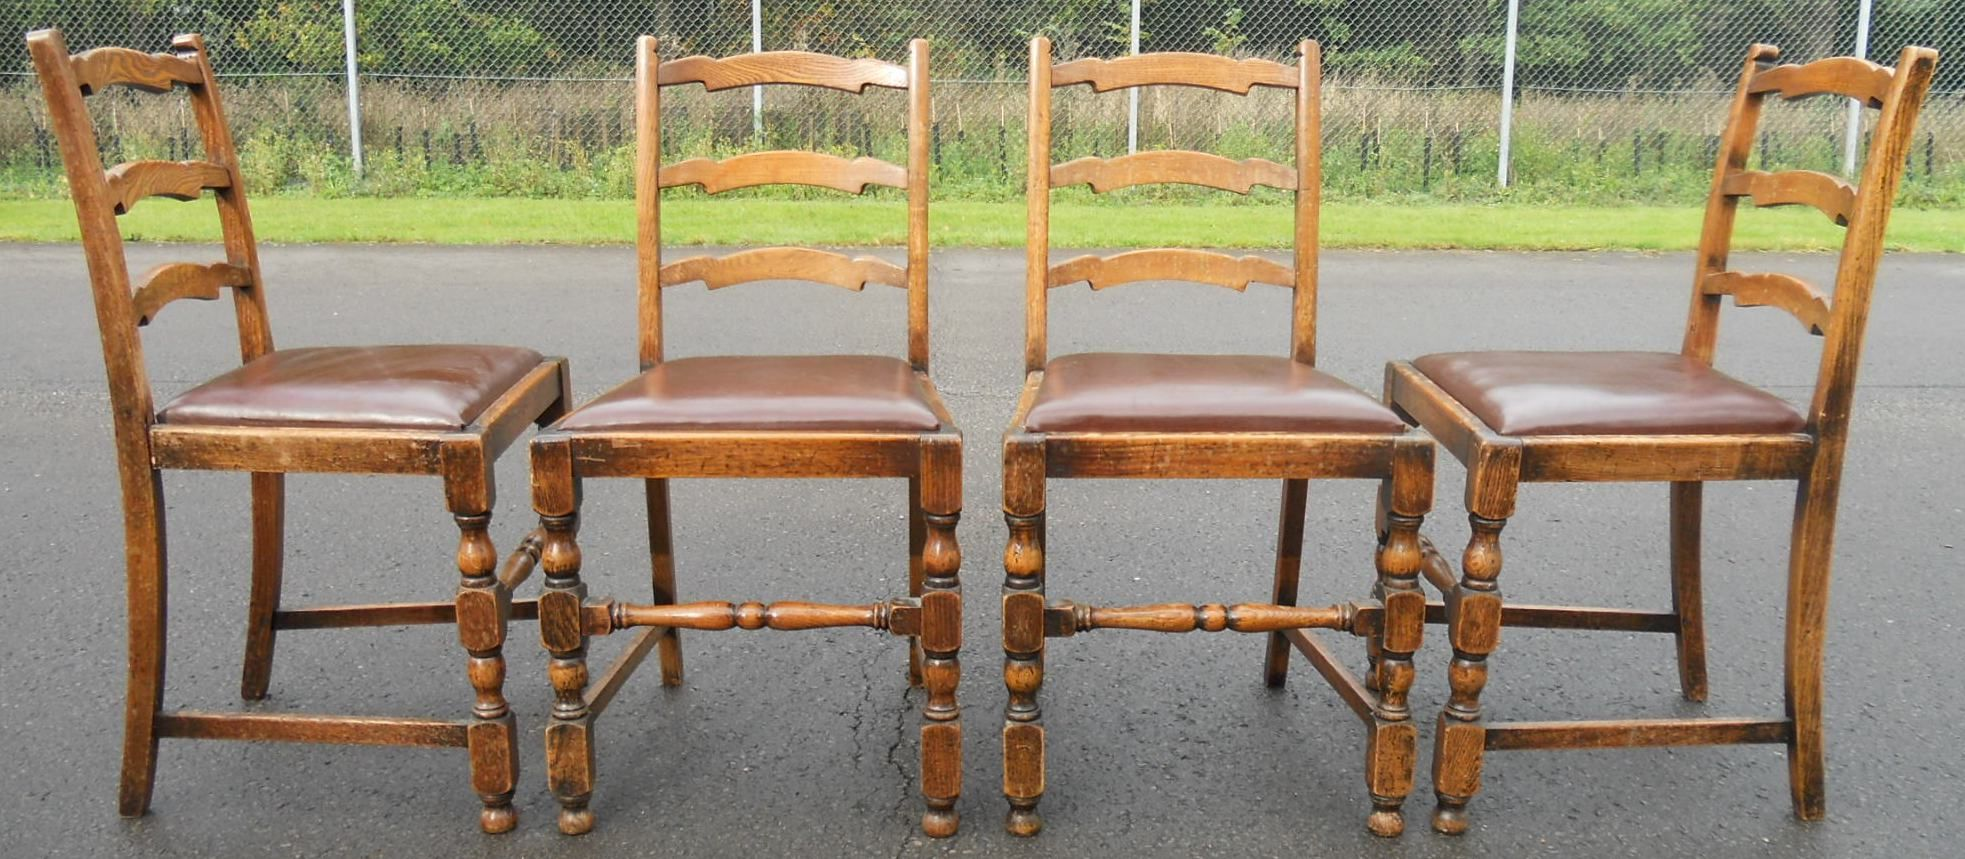 antique ladder back chairs uk kneeling chair staples canada set of four oak ladderback dining